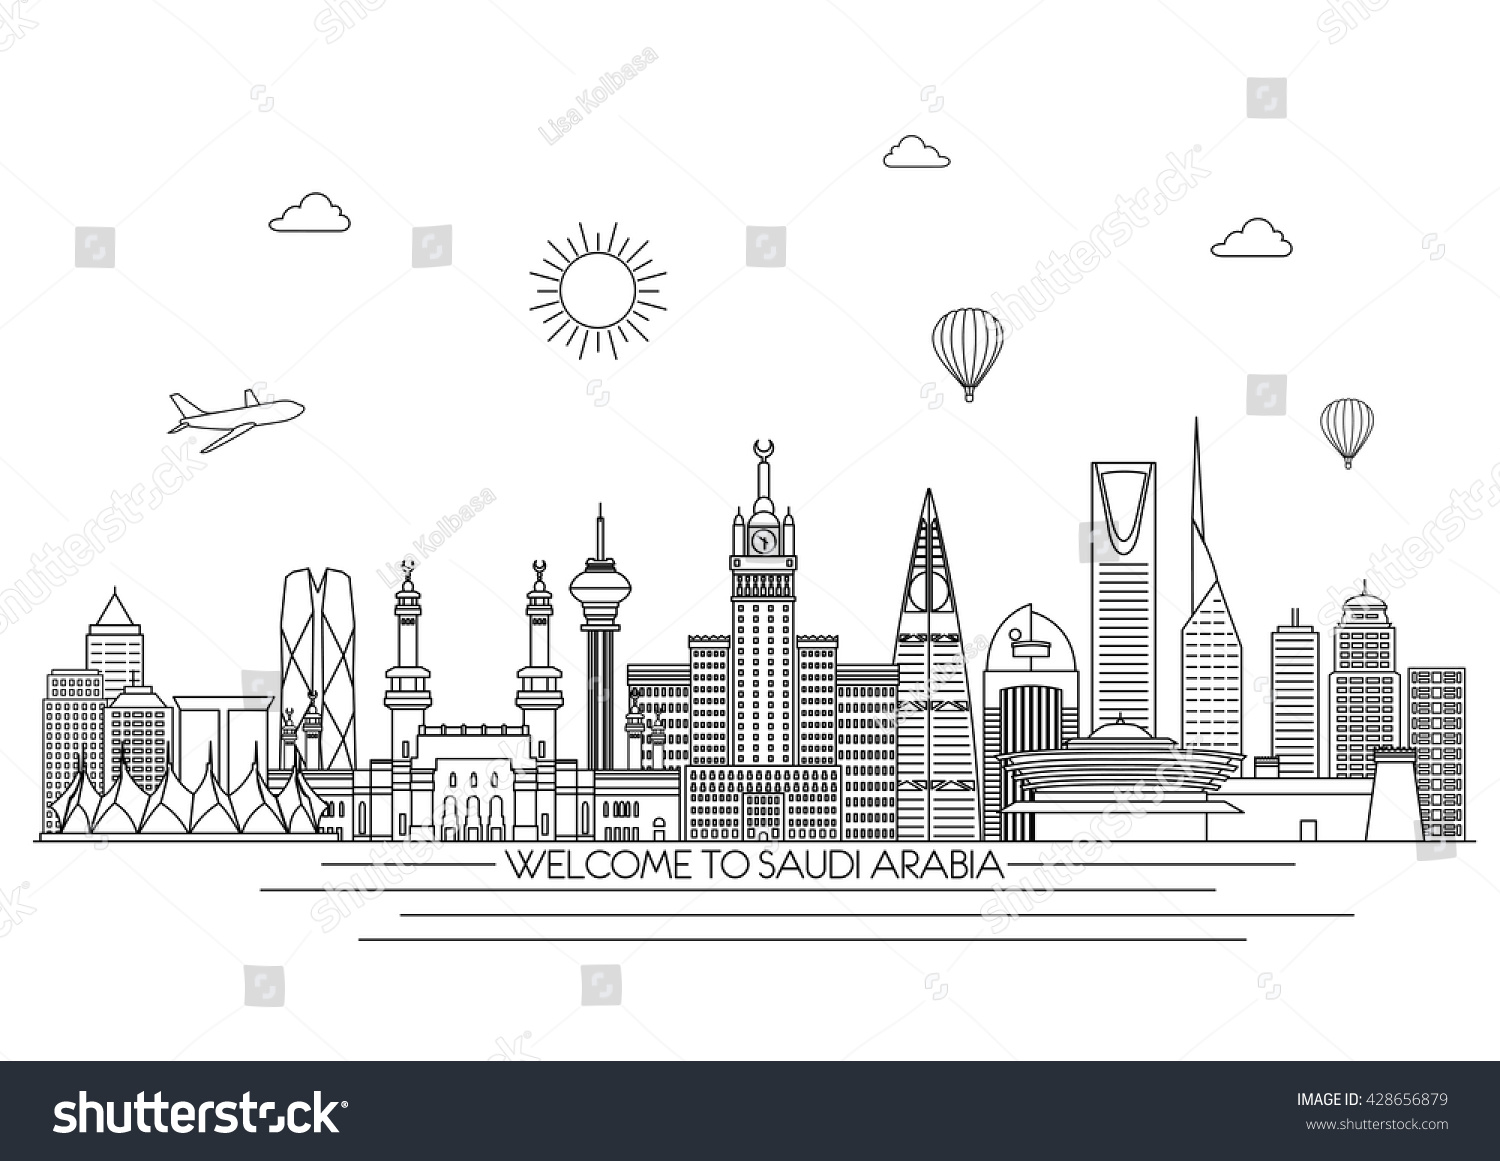 Saudi Arabia detailed Skyline Travel and tourism background Vector background line illustration Line art style